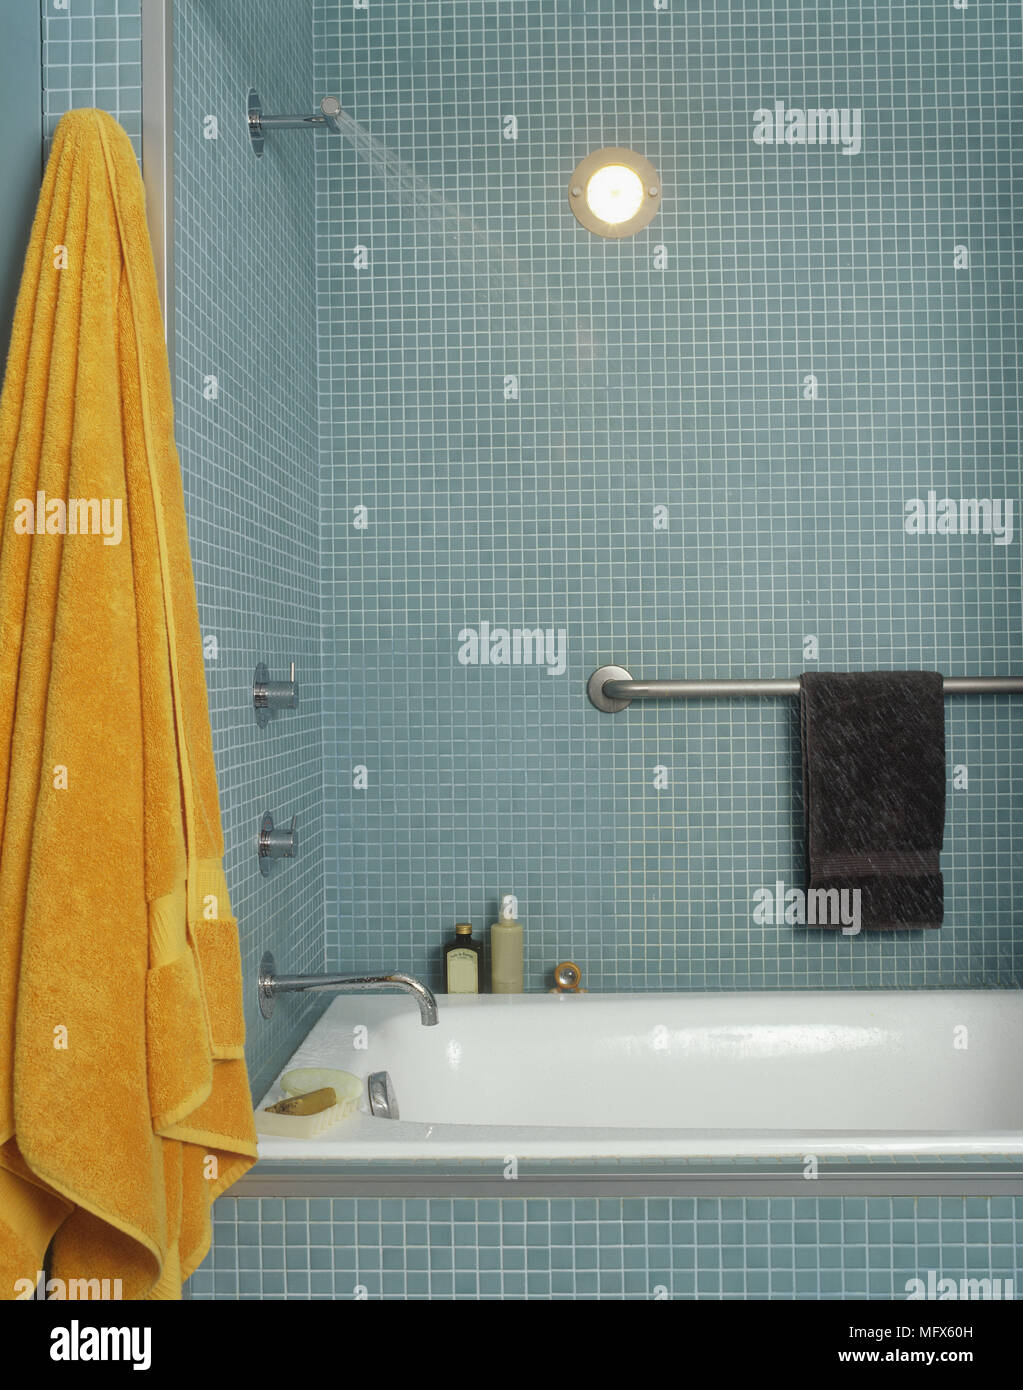 A modern blue bathroom tiled walls with mosaic tiles bath chrome tap ...